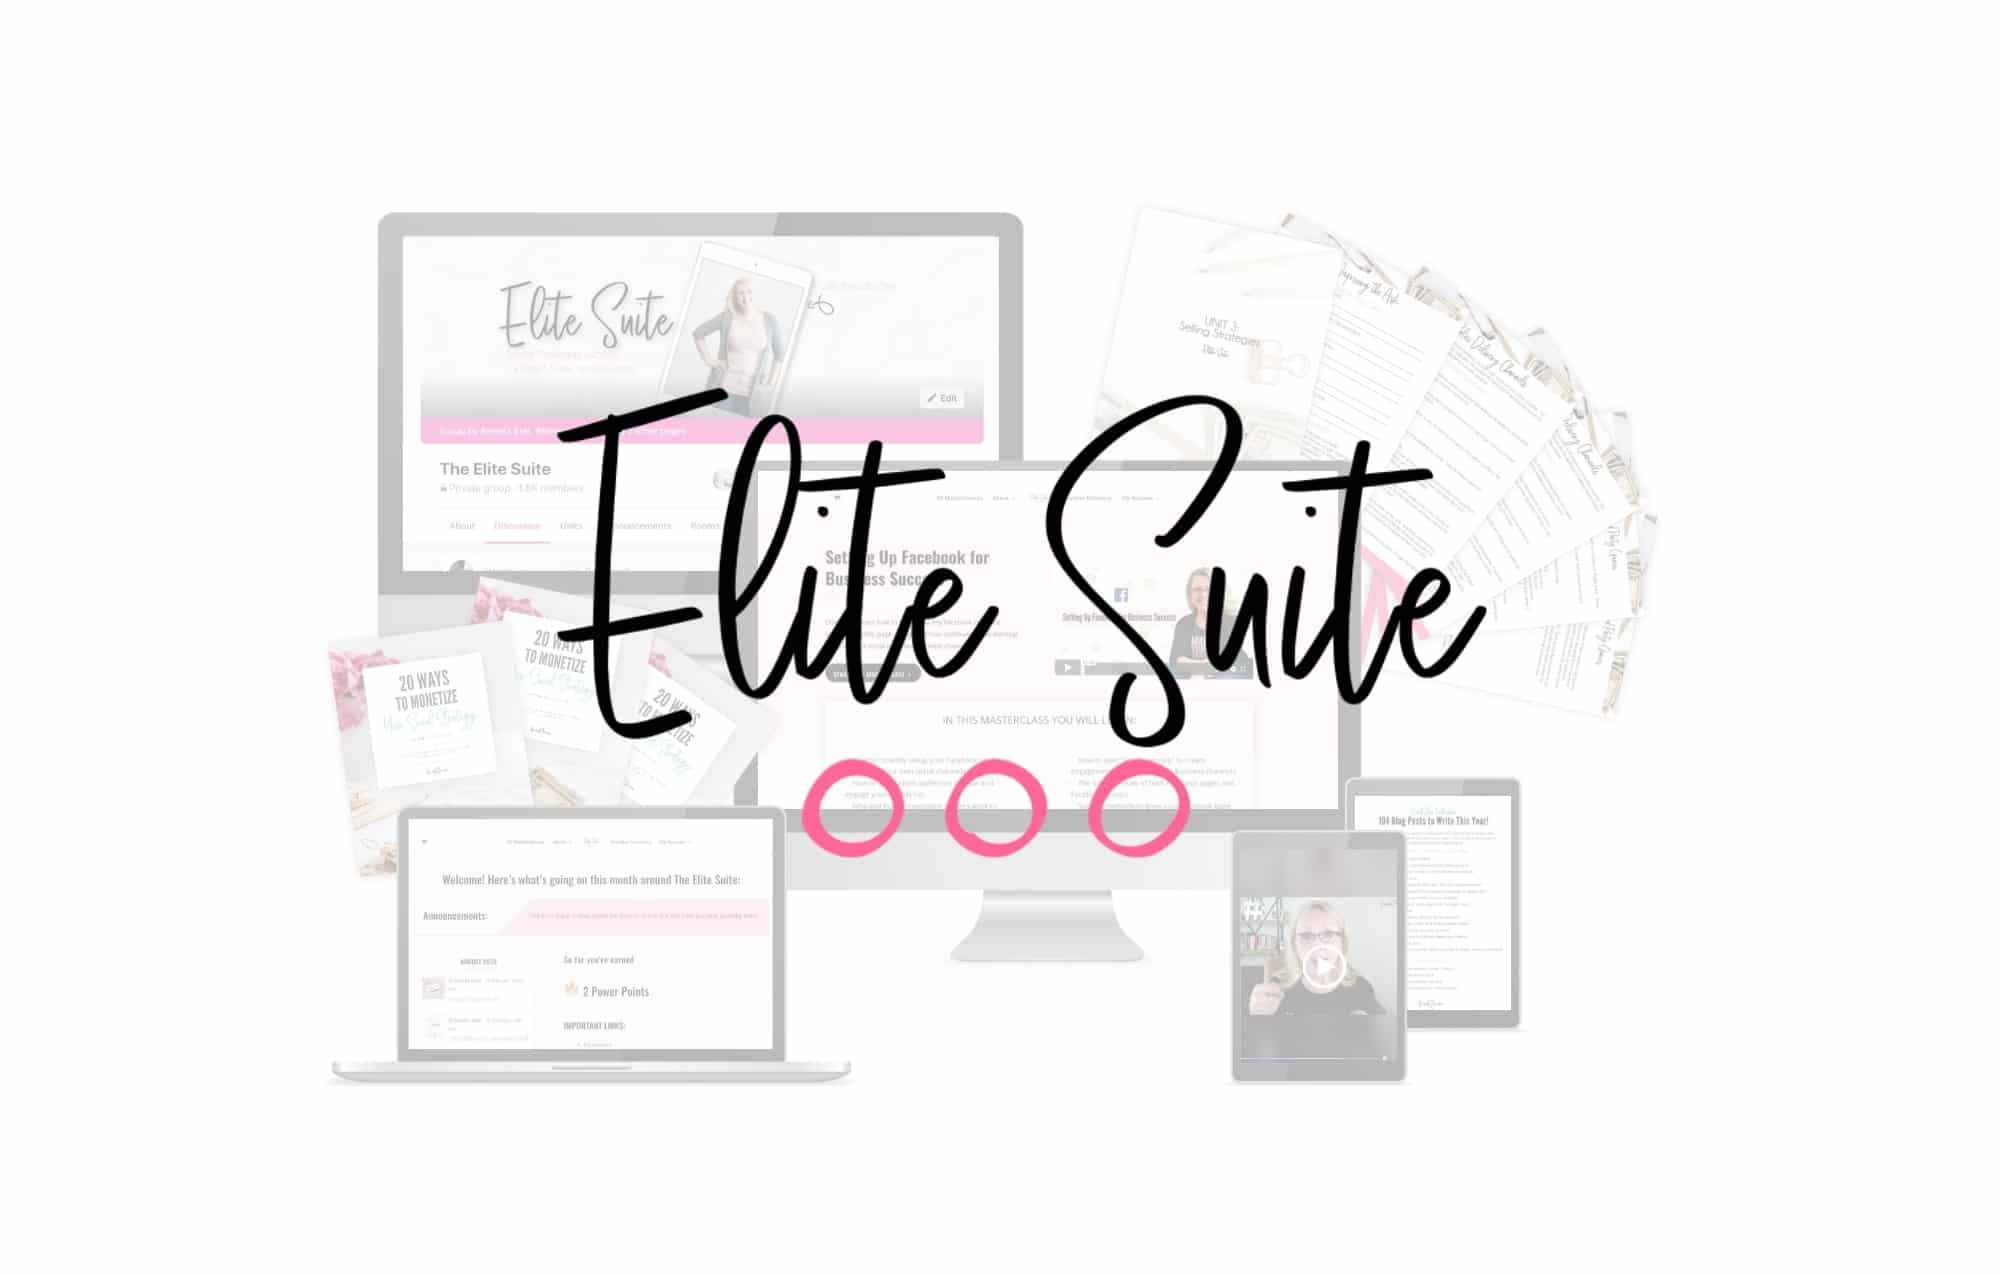 te TSuie - social marketing and business strategy training for direct sellers